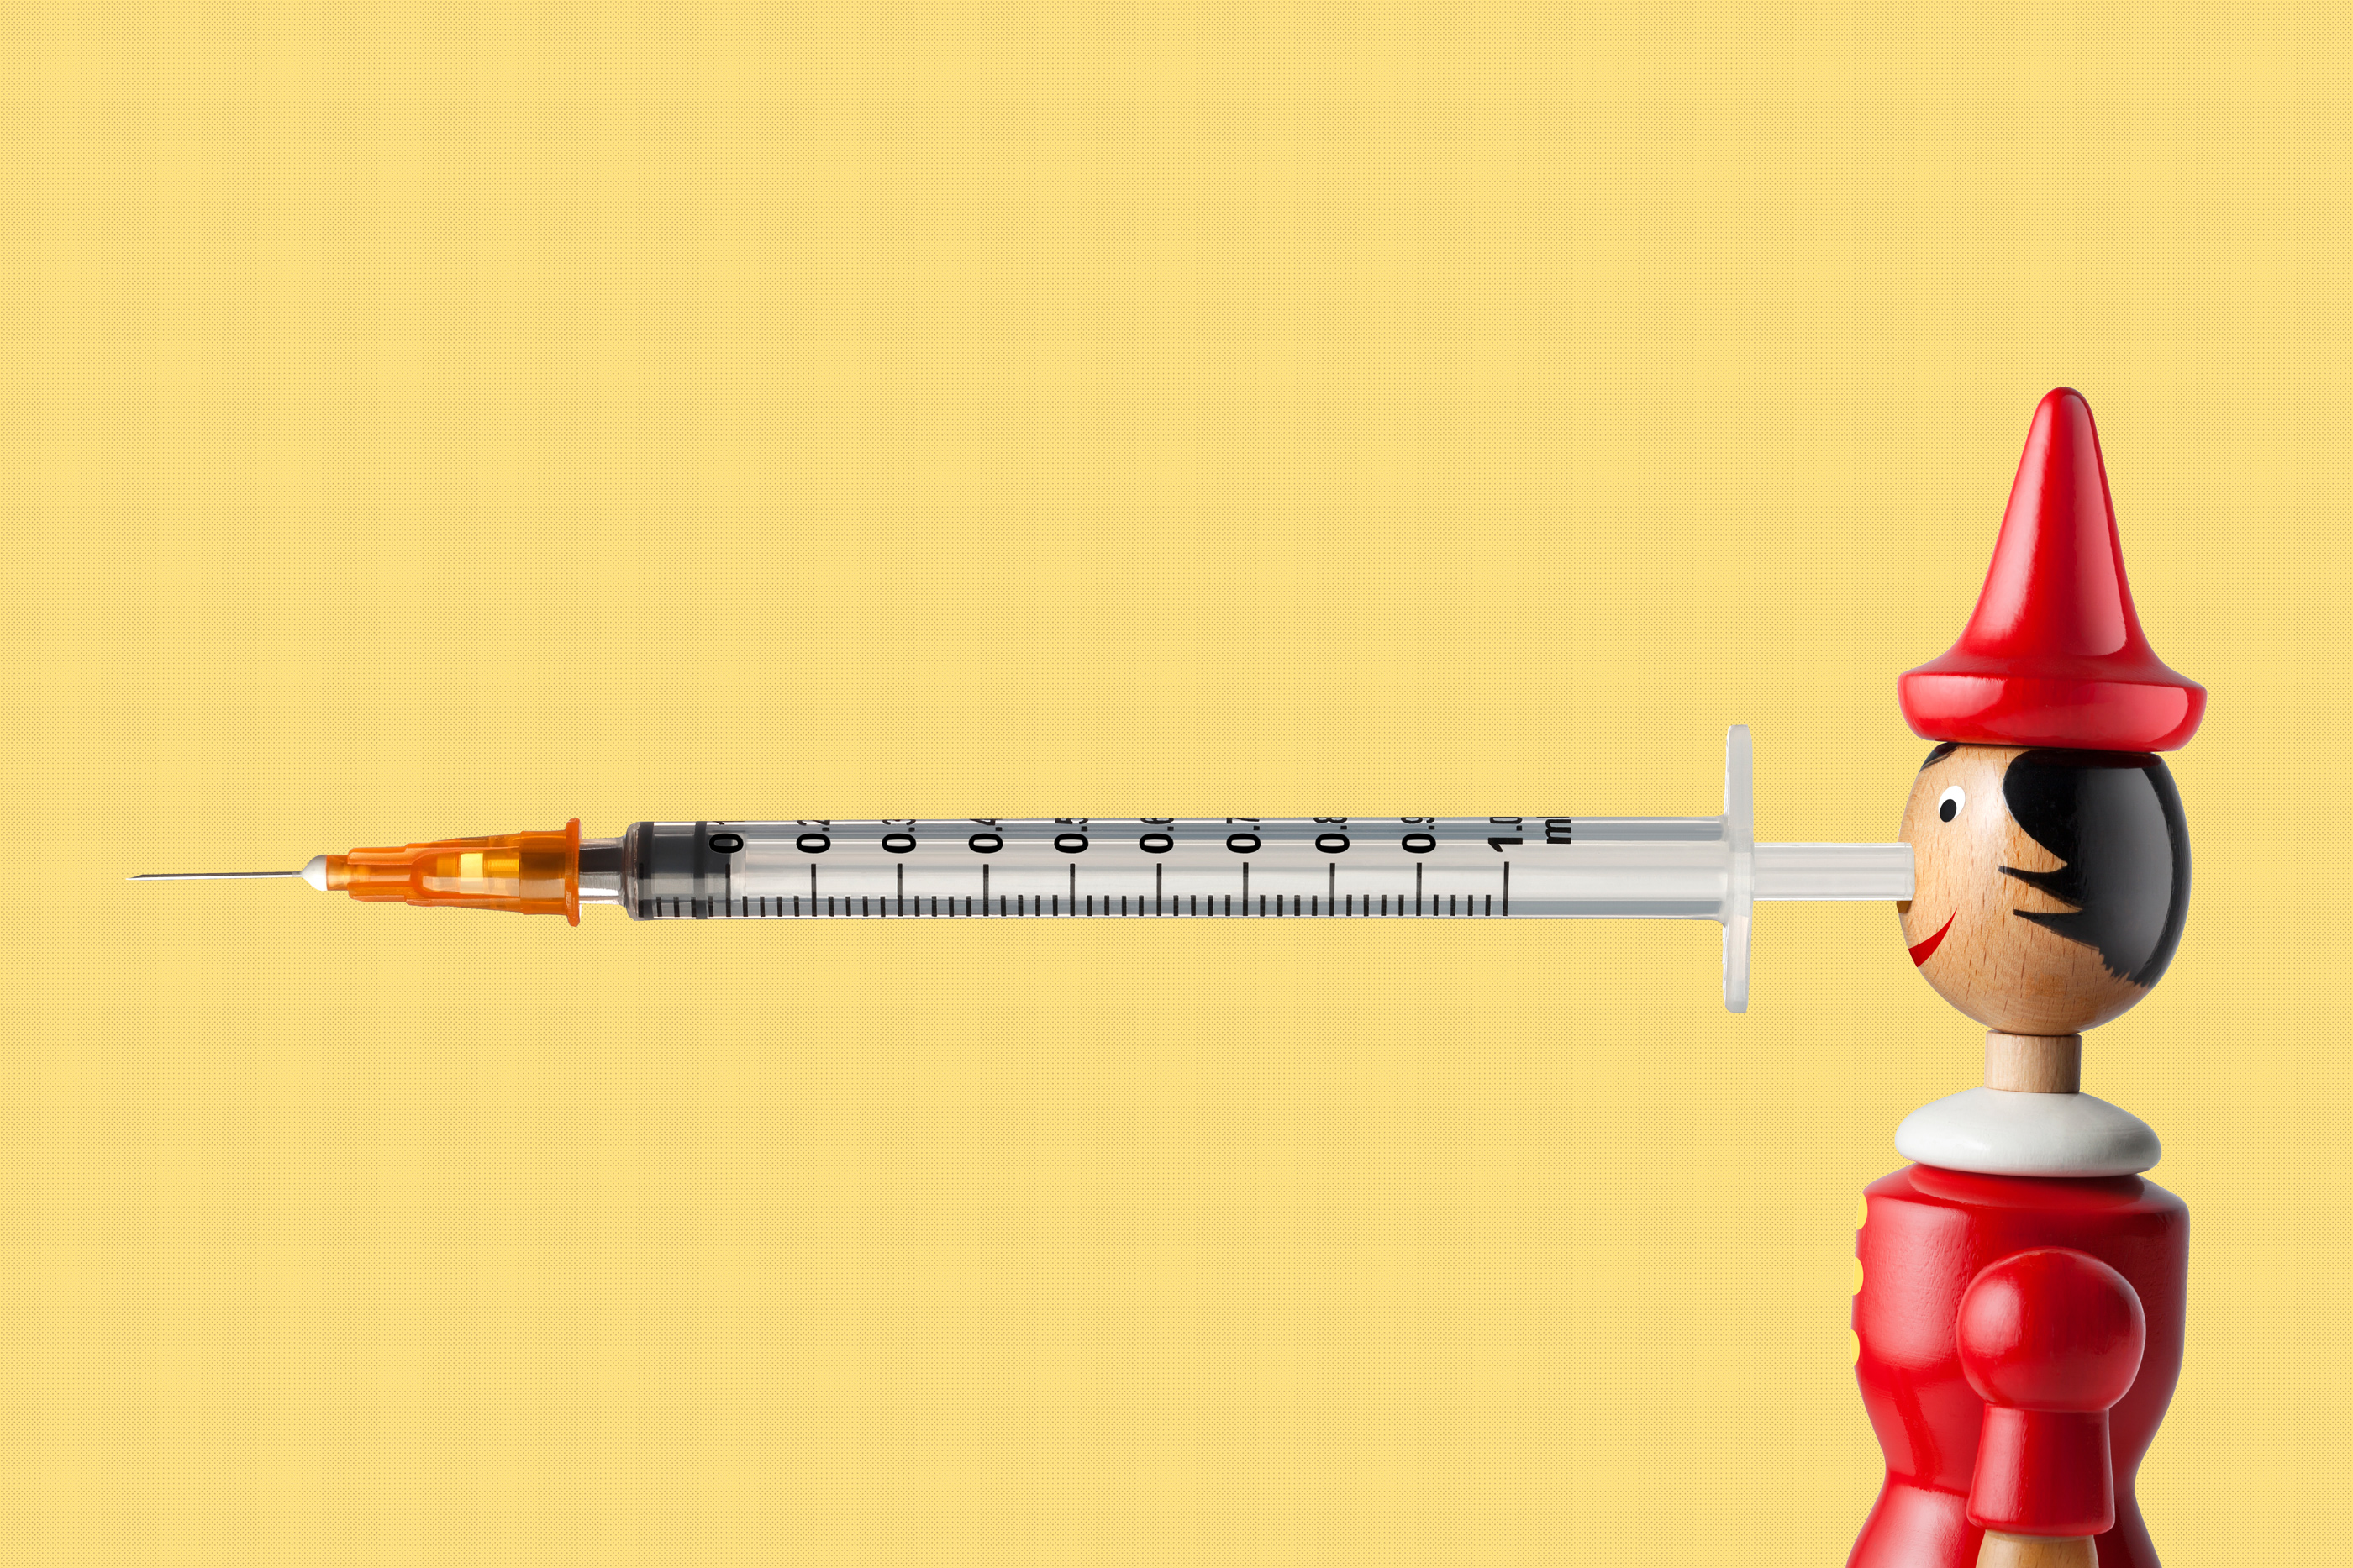 Pinnochio with syringe nose